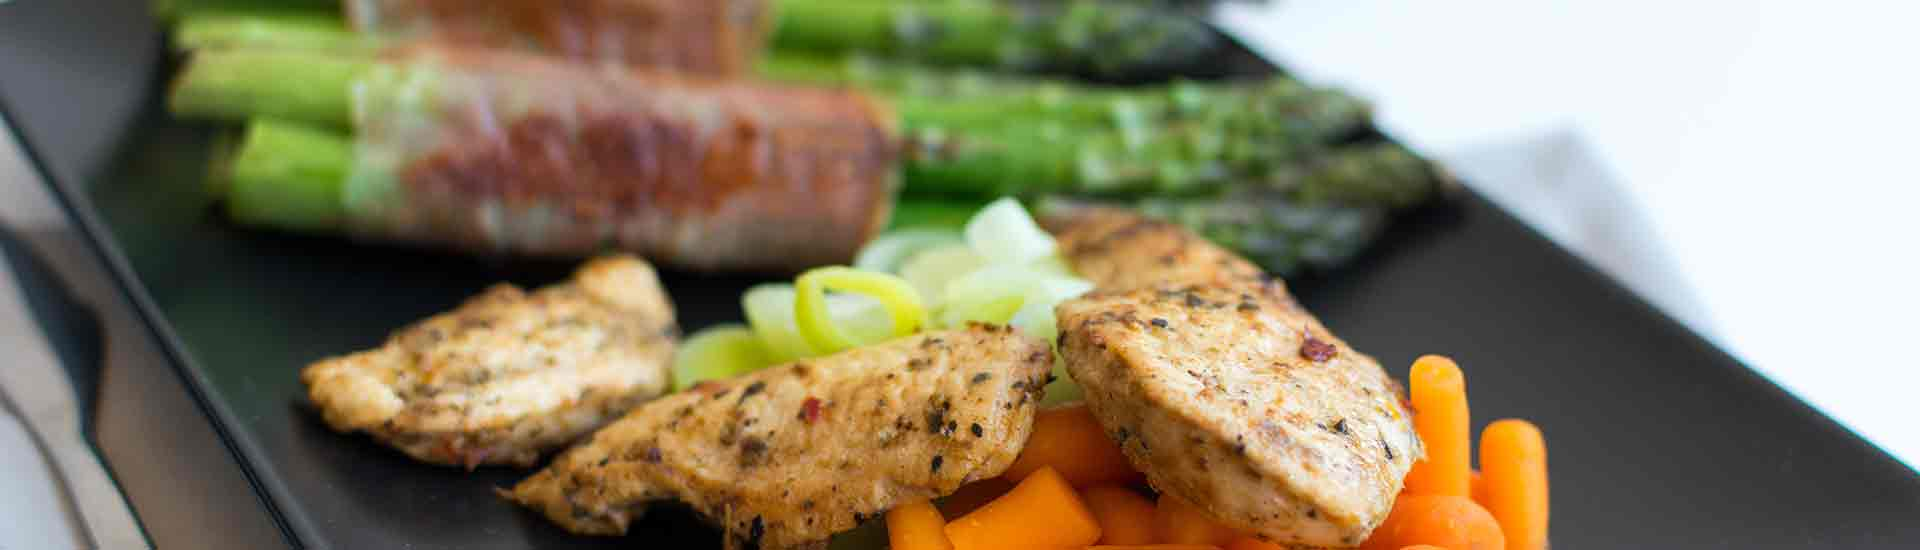 How to Sous vide Chicken